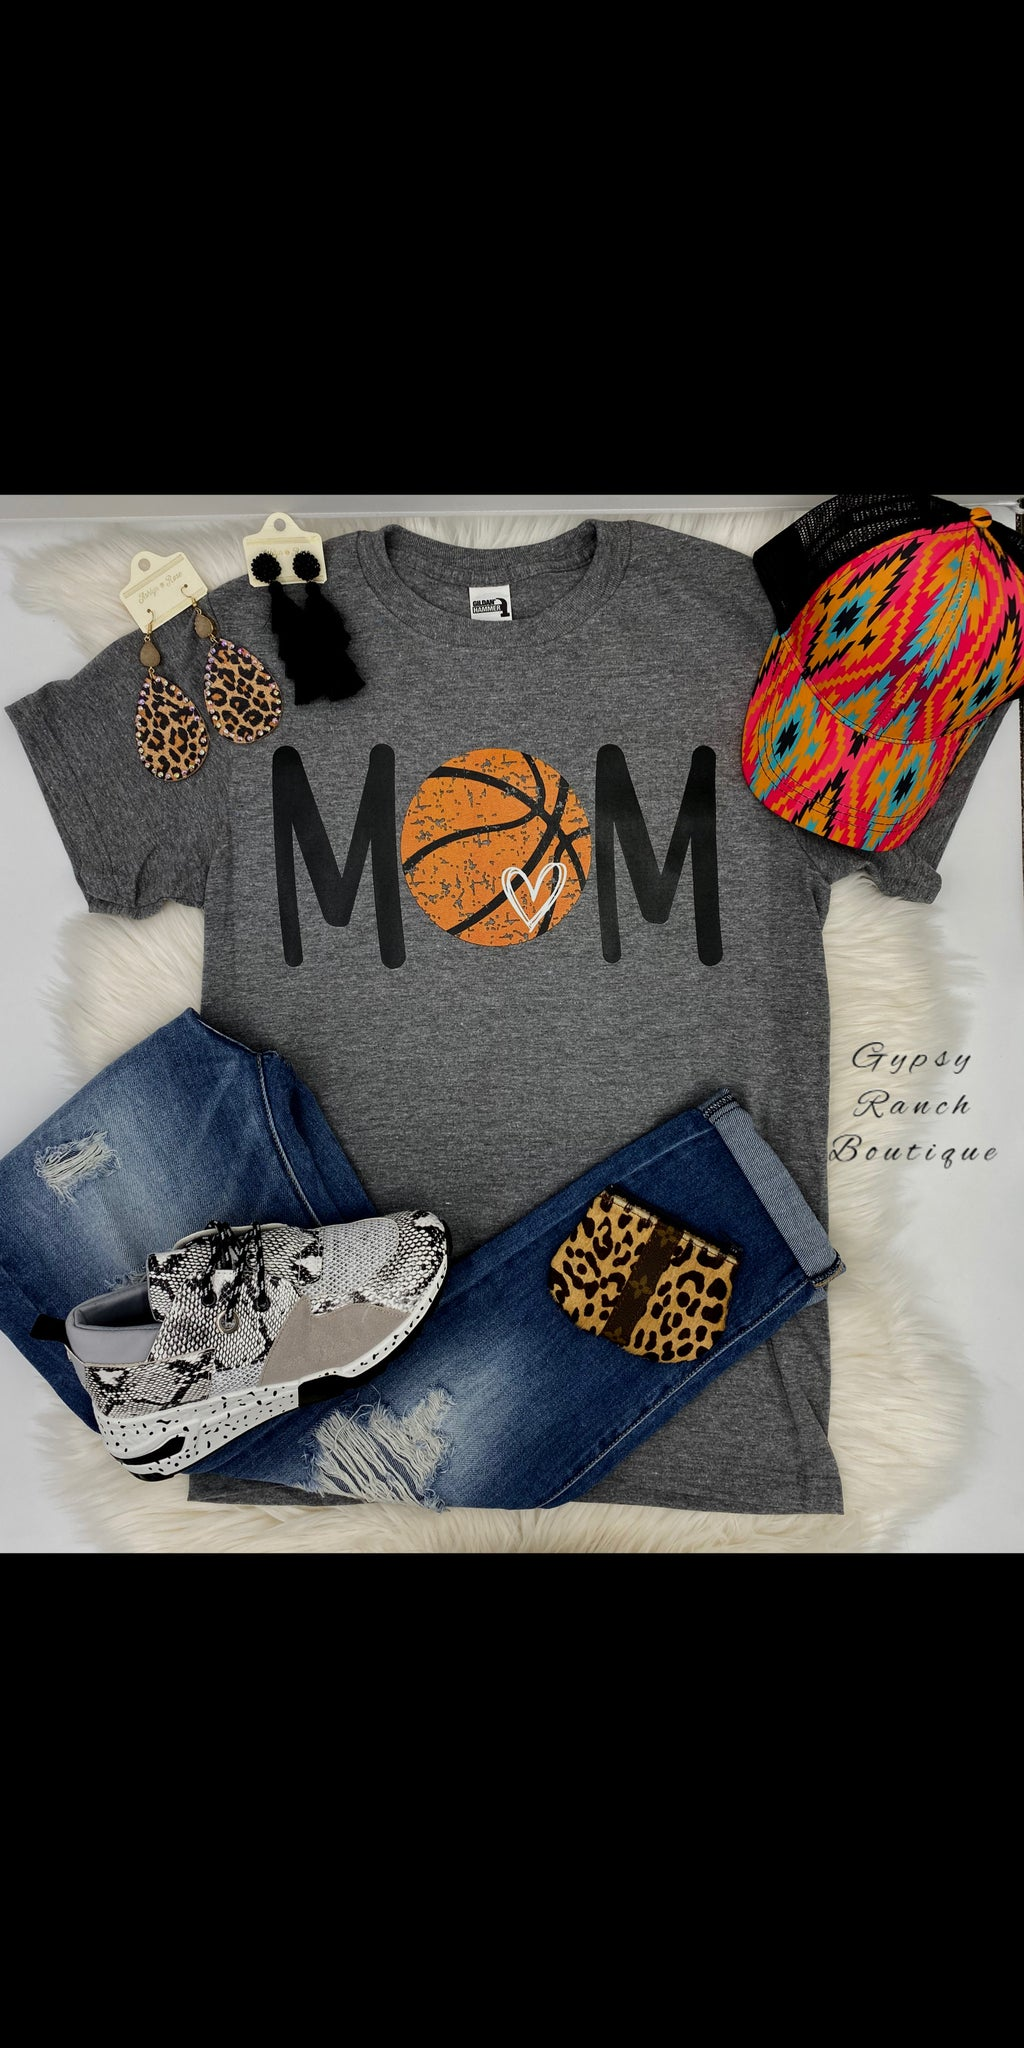 MOM Basketball Top - Also in Plus Size